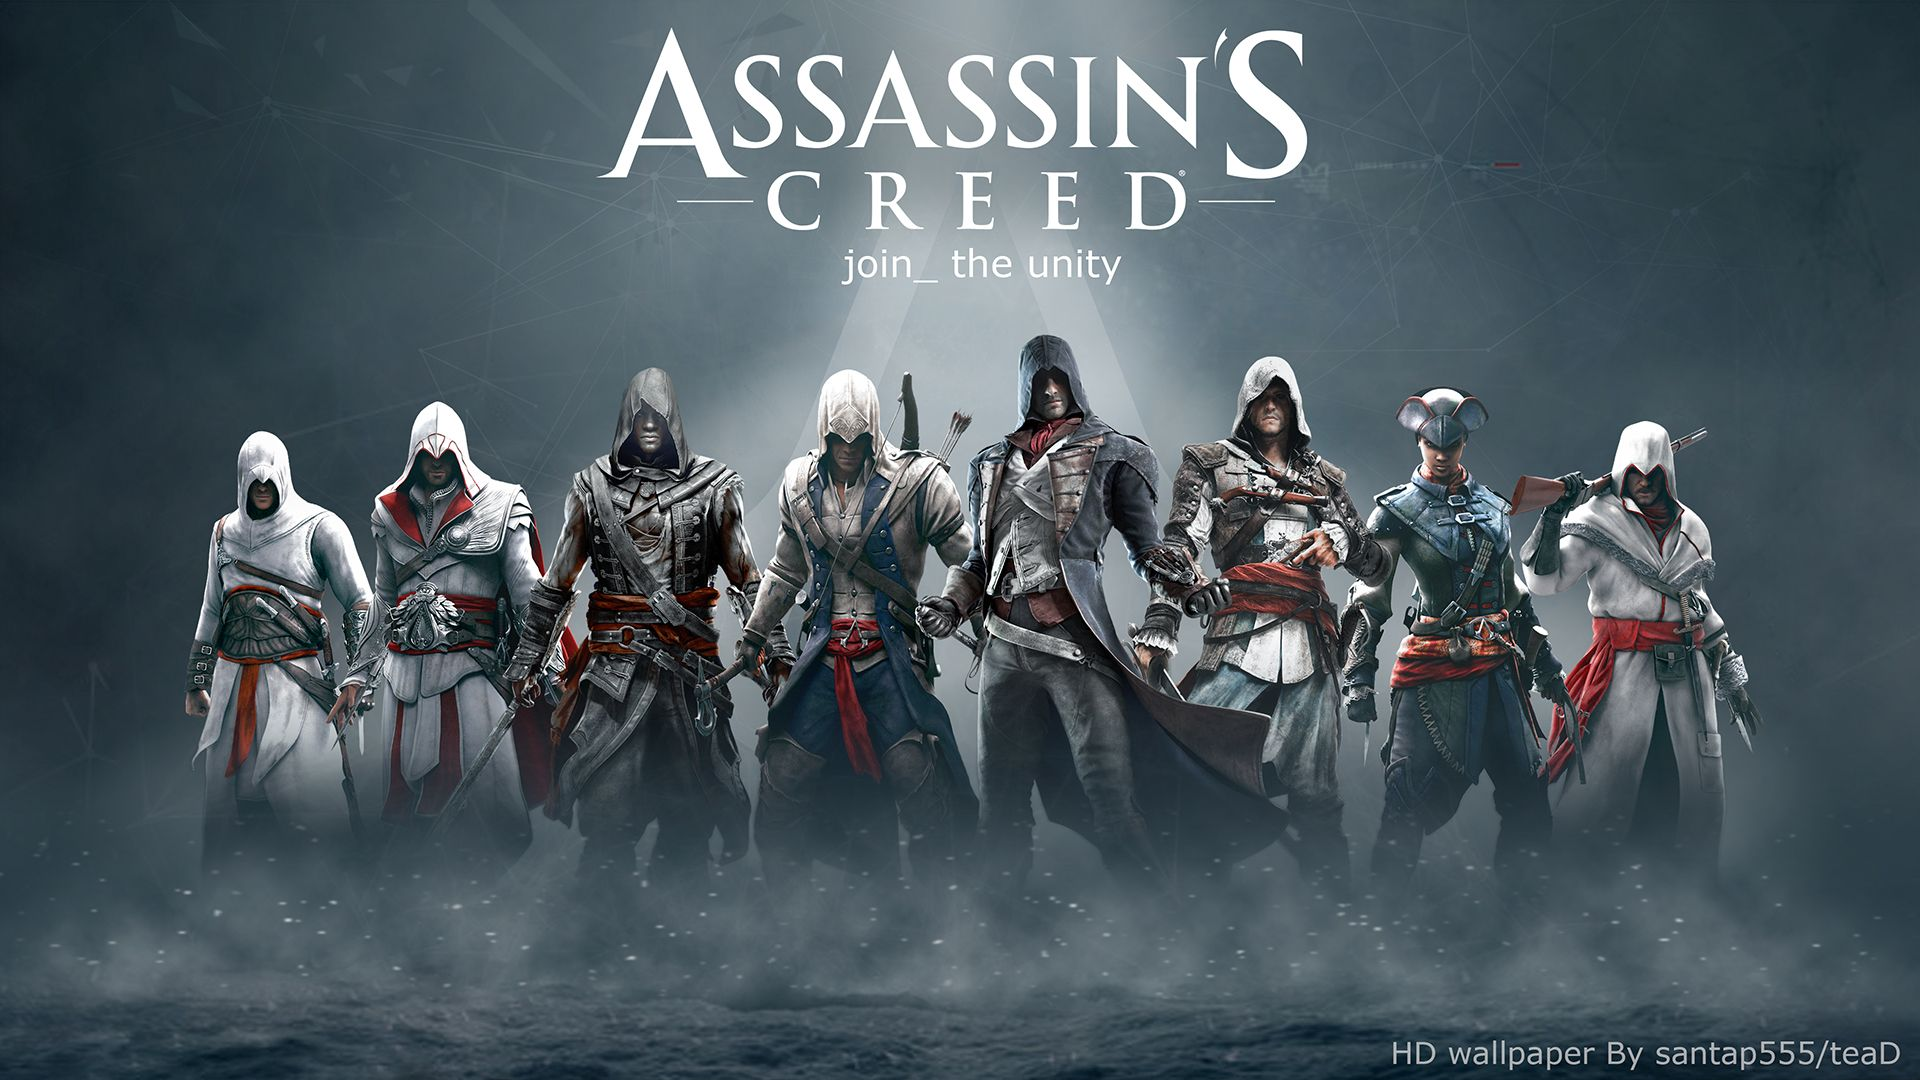 Assassin S Creed Hd Wallpaper 4 By Tead Assassin S Creed Wallpaper Assassins Creed Unity Assassin S Creed Hd